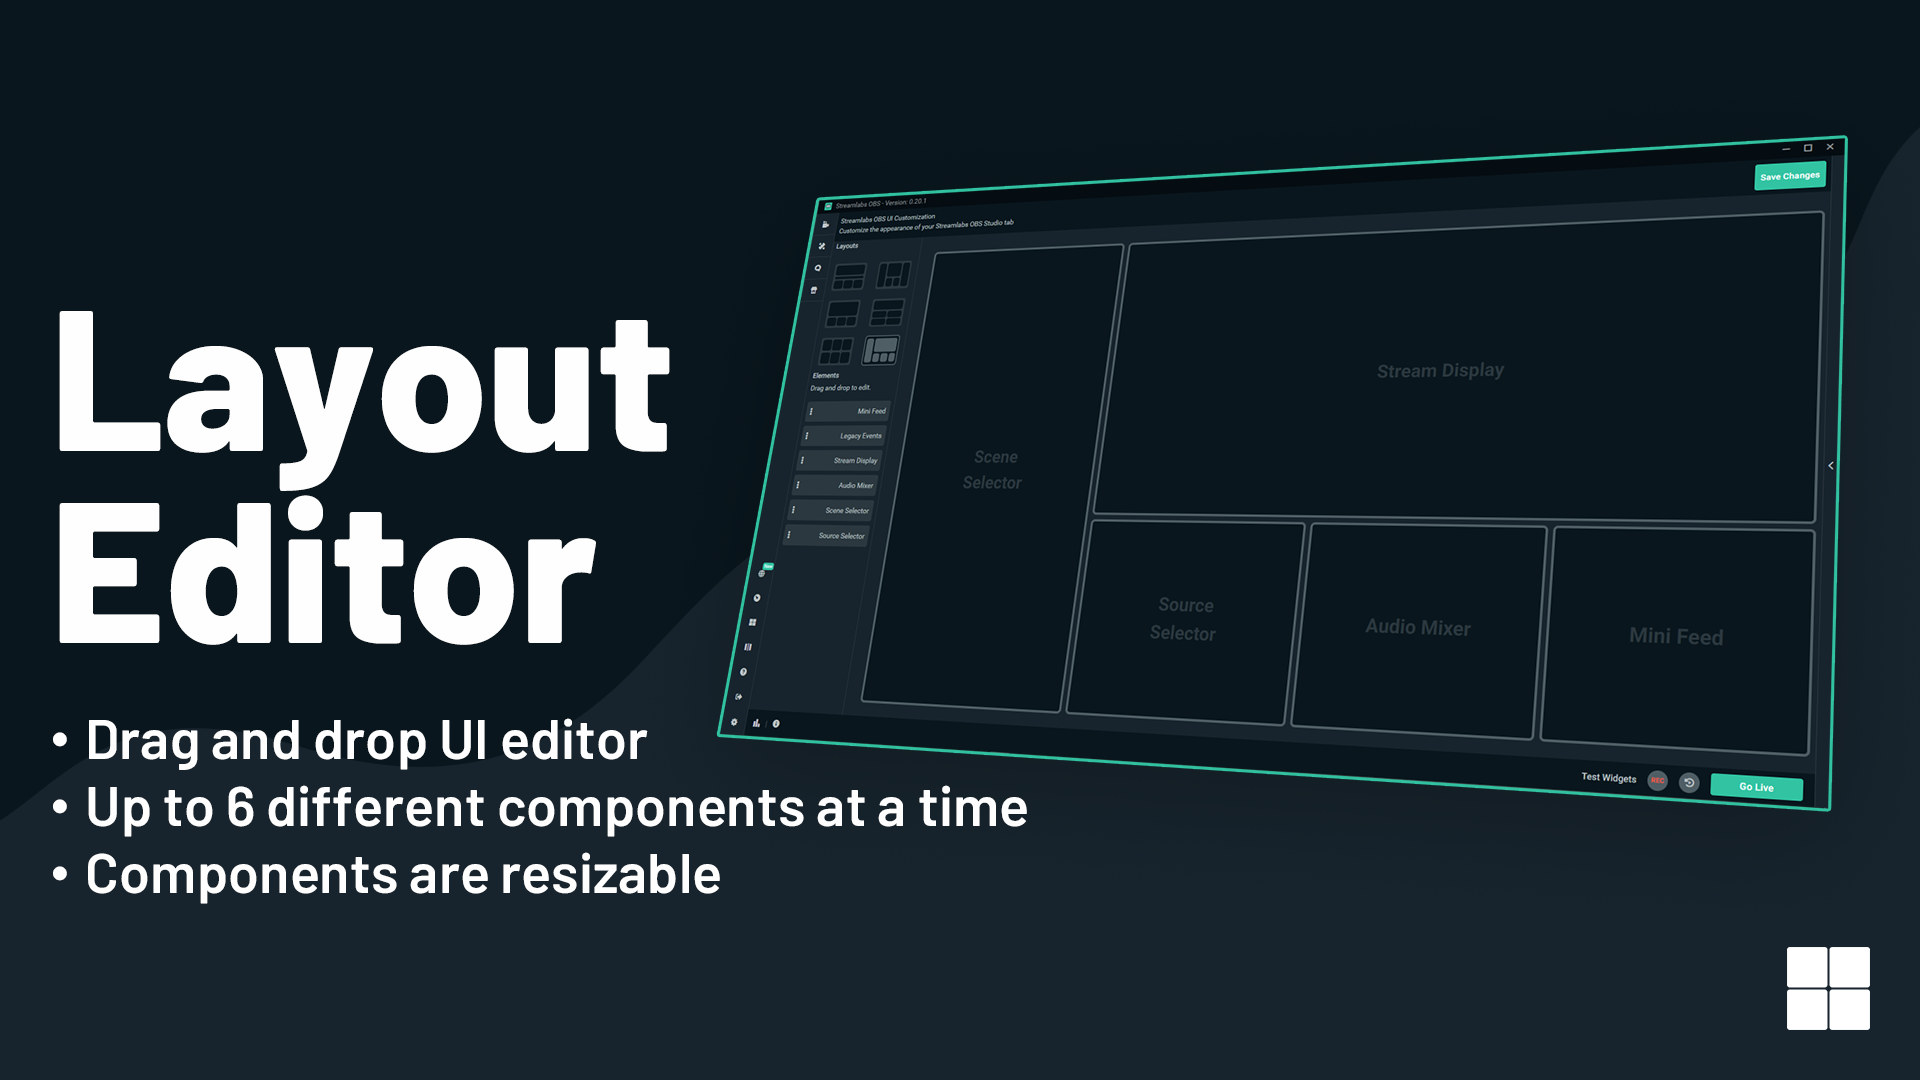 Personalize Streamlabs Obs With Our New Layout Editor By Ashray Urs Streamlabs Blog